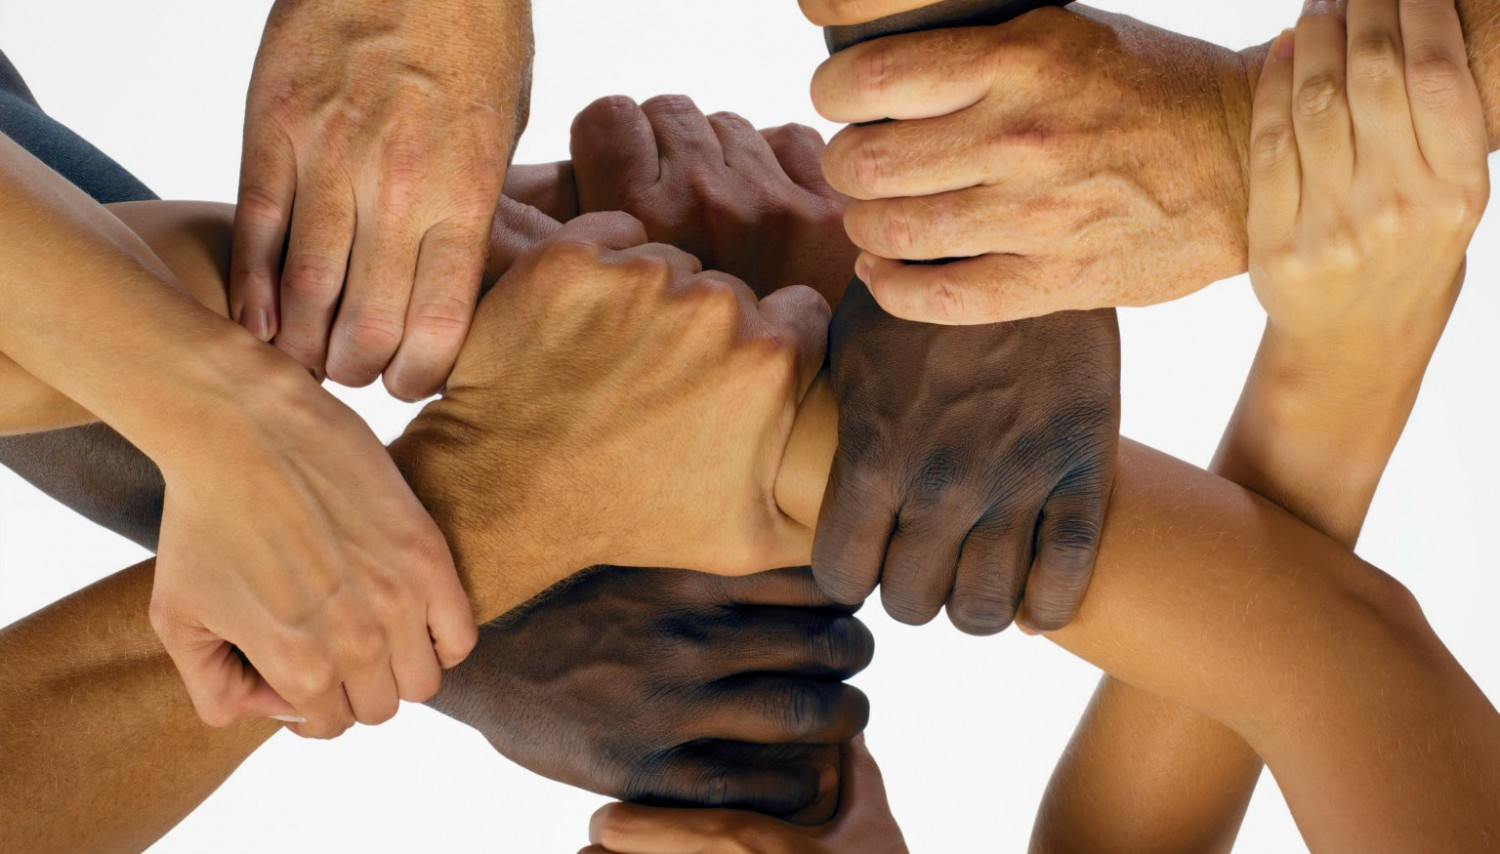 skin color discrimination Title vii of the civil rights act of 1964 protects individuals against employment  discrimination on the basis of race and color as well as national origin, sex,.